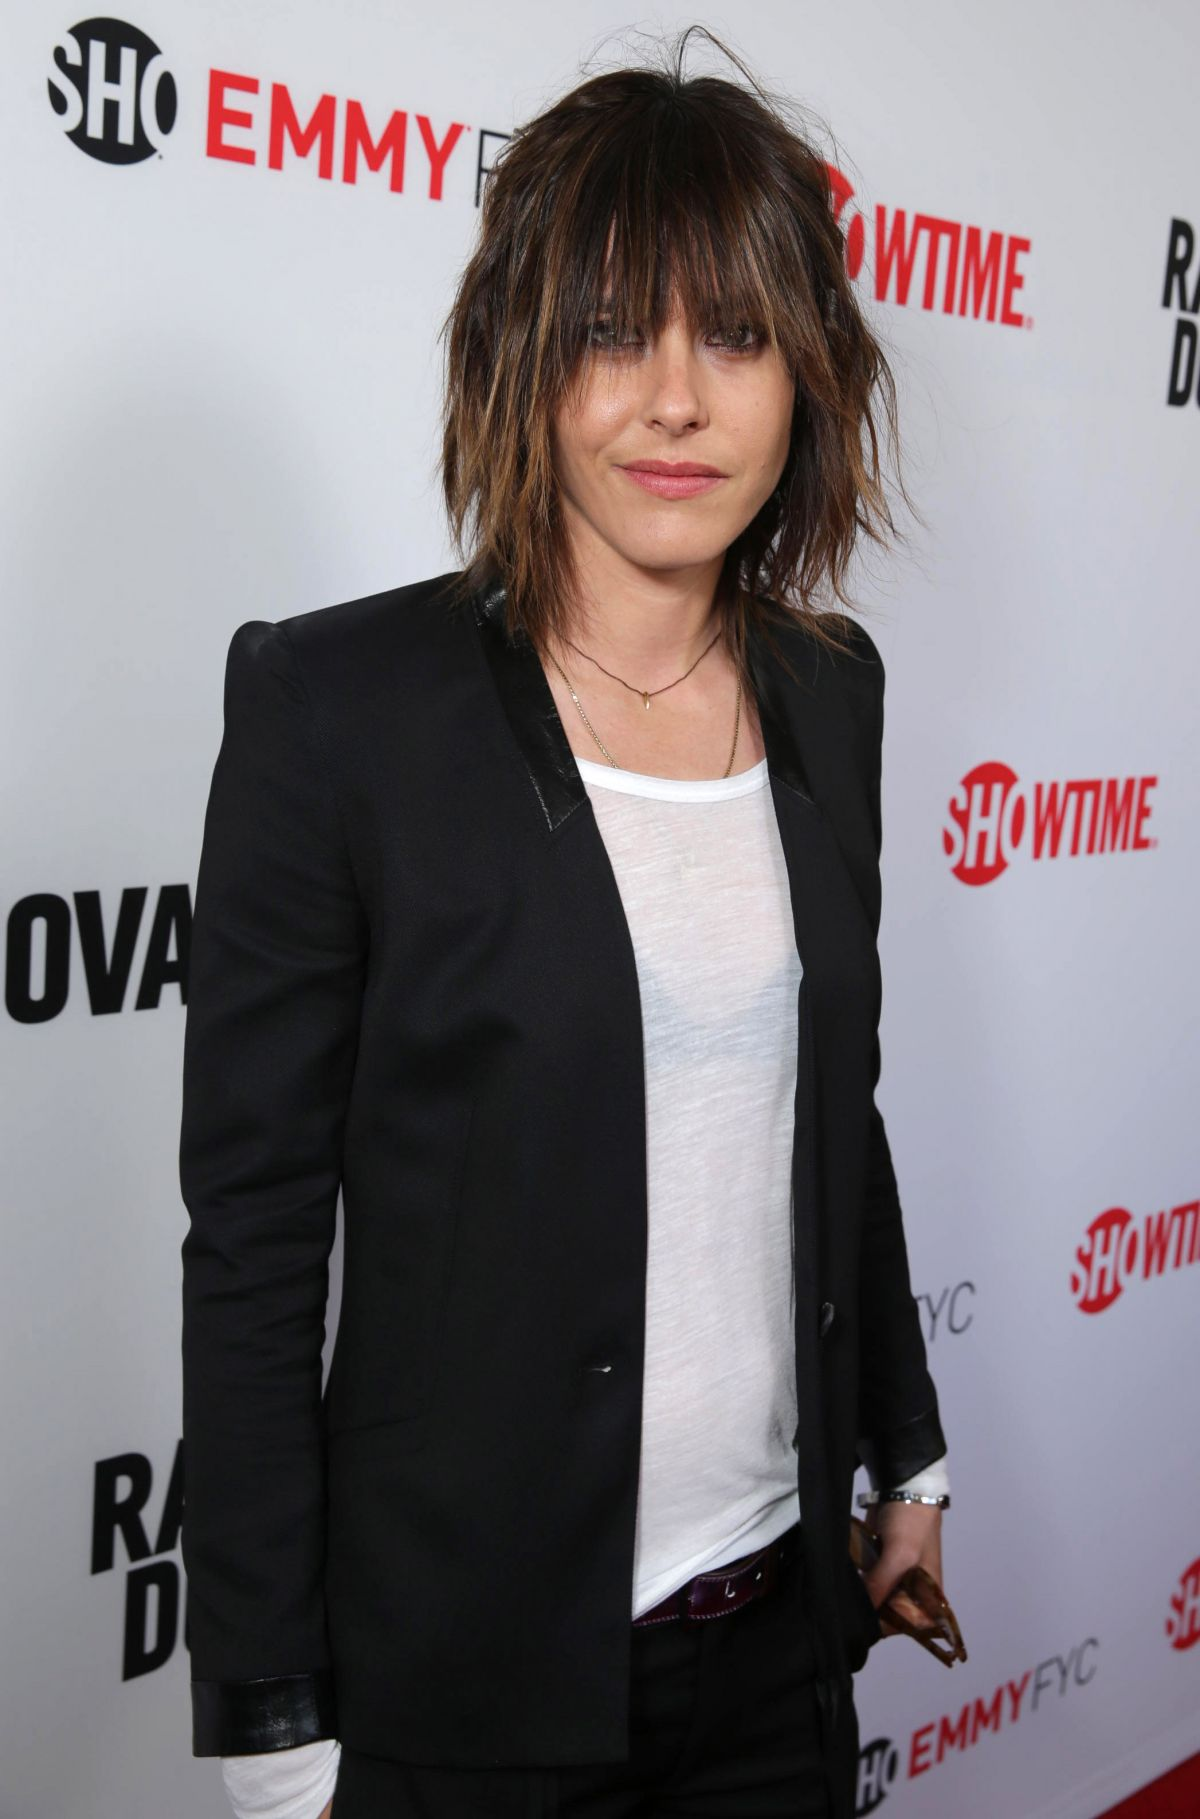 Discussion on this topic: Luana Patten, katherine-moennig/